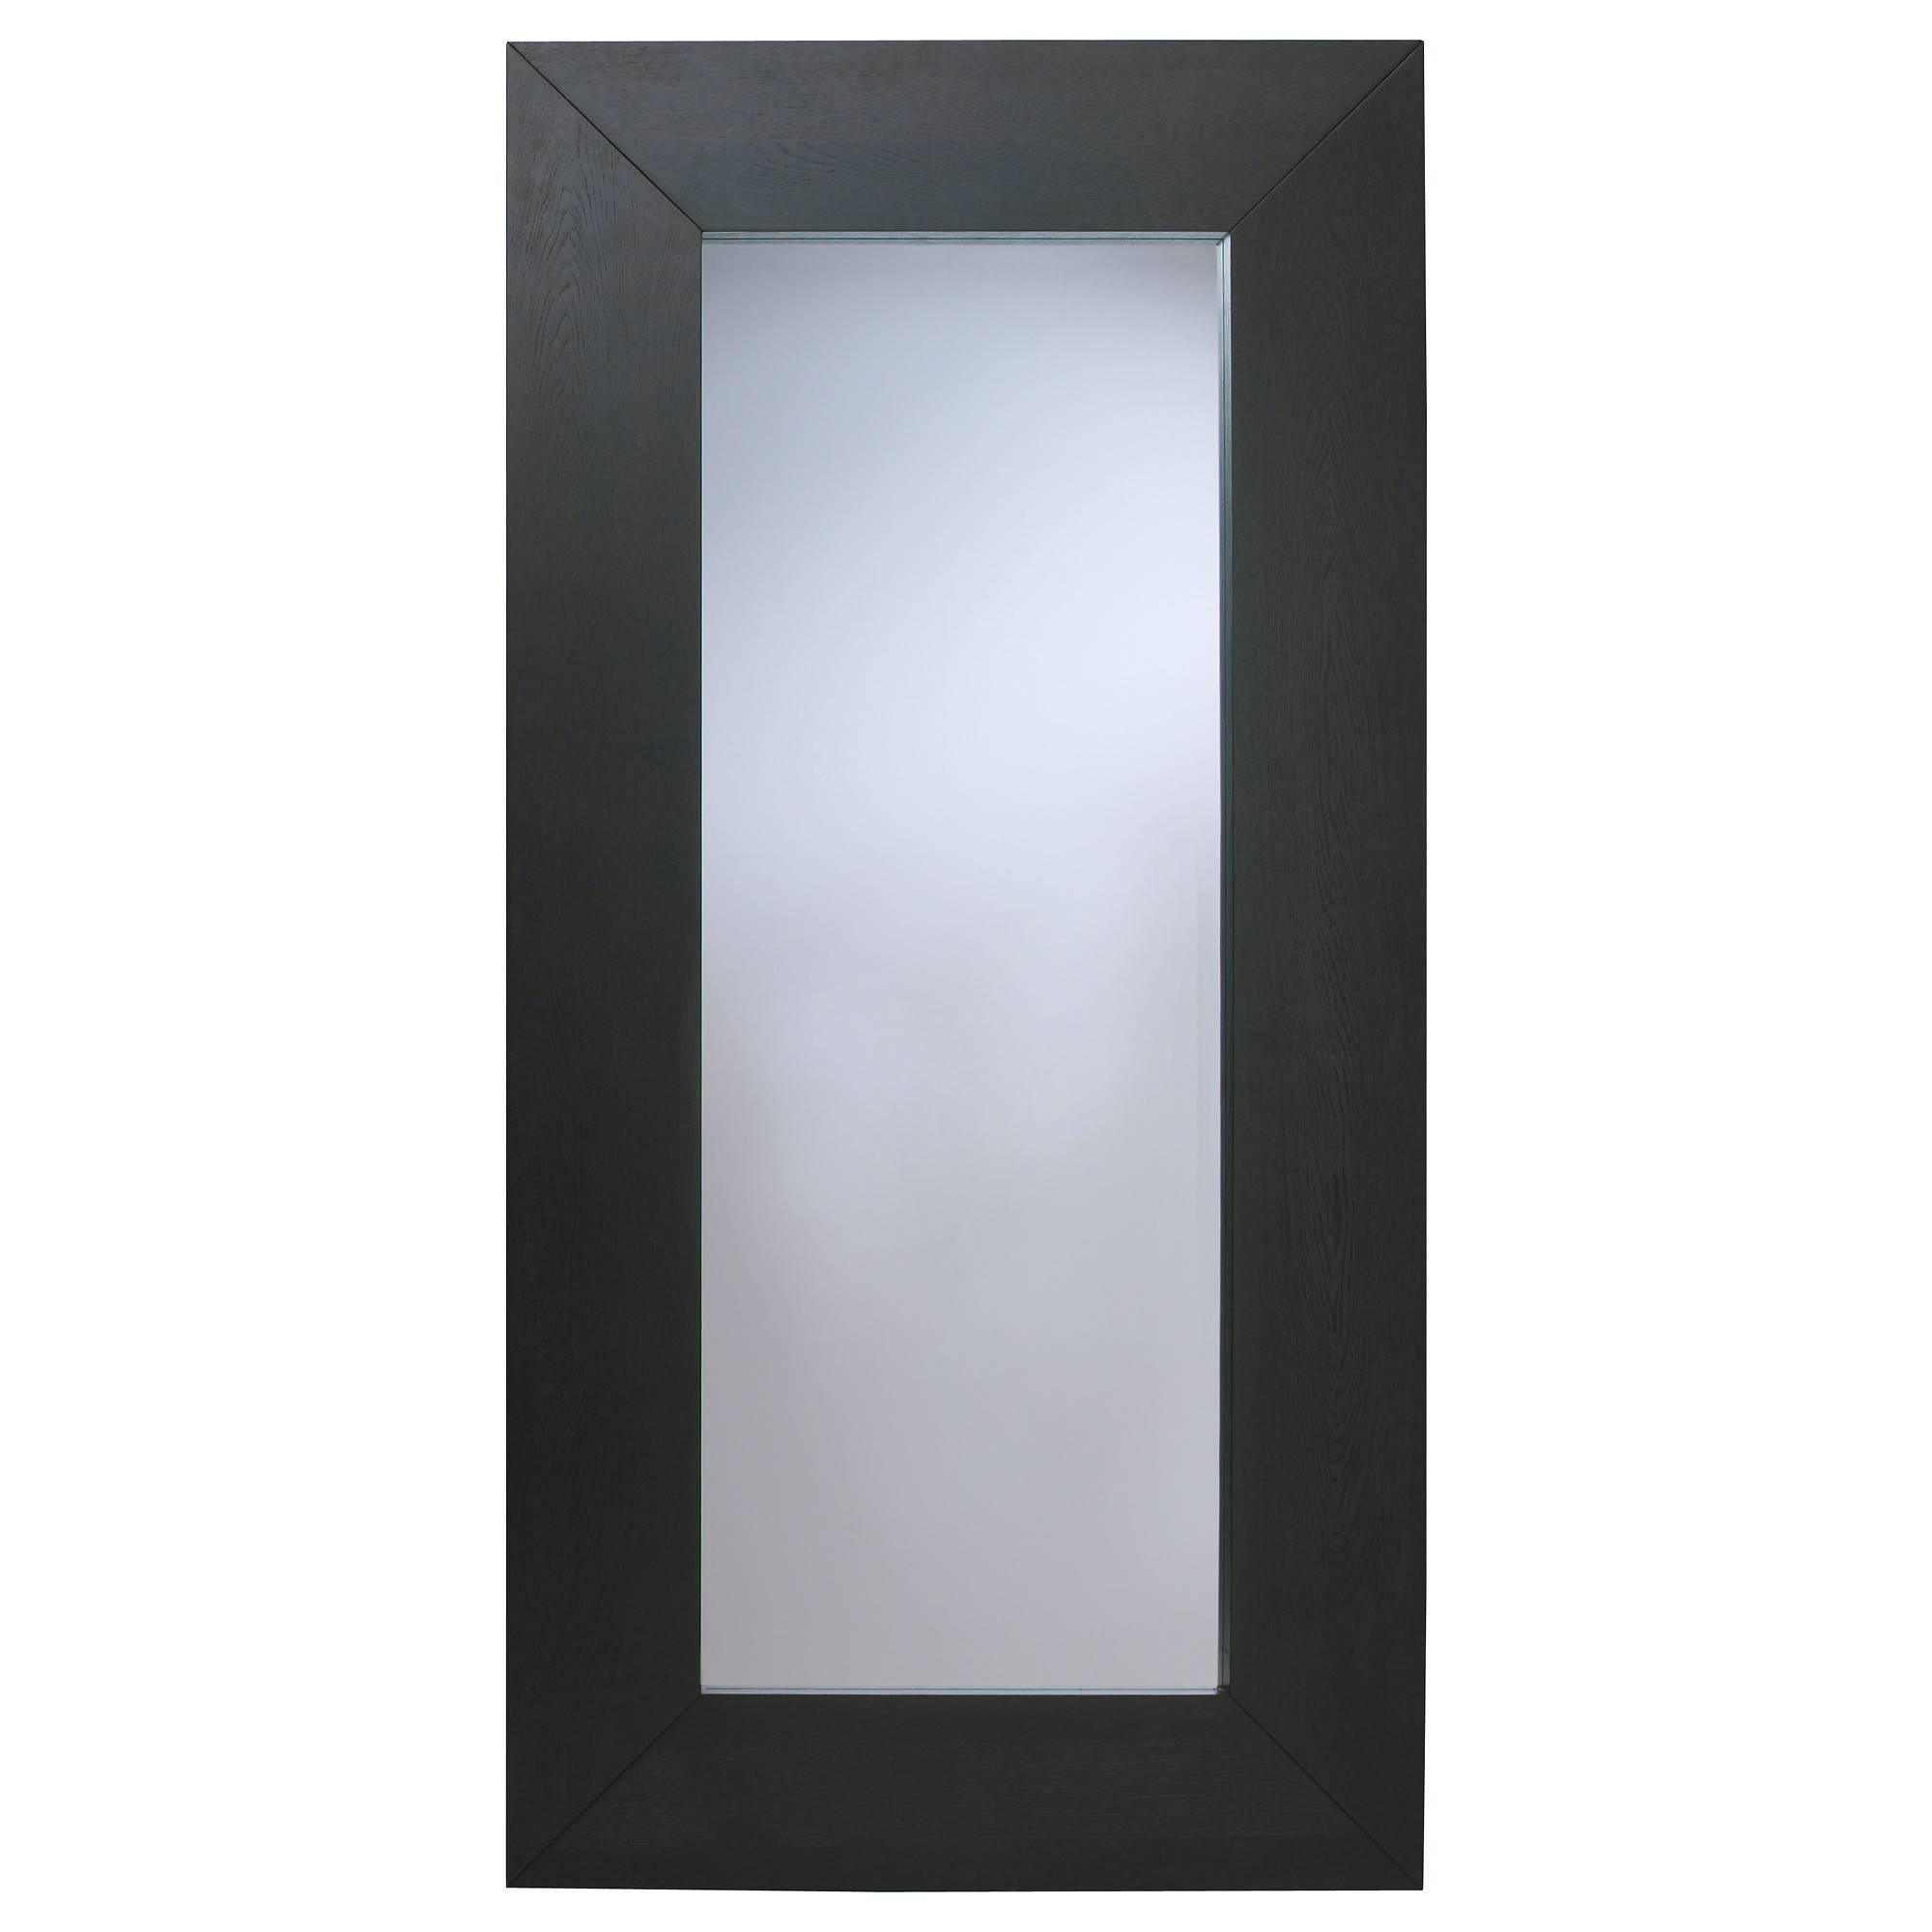 Wall Mirrors - Ikea in Large Frameless Mirrors (Image 25 of 25)